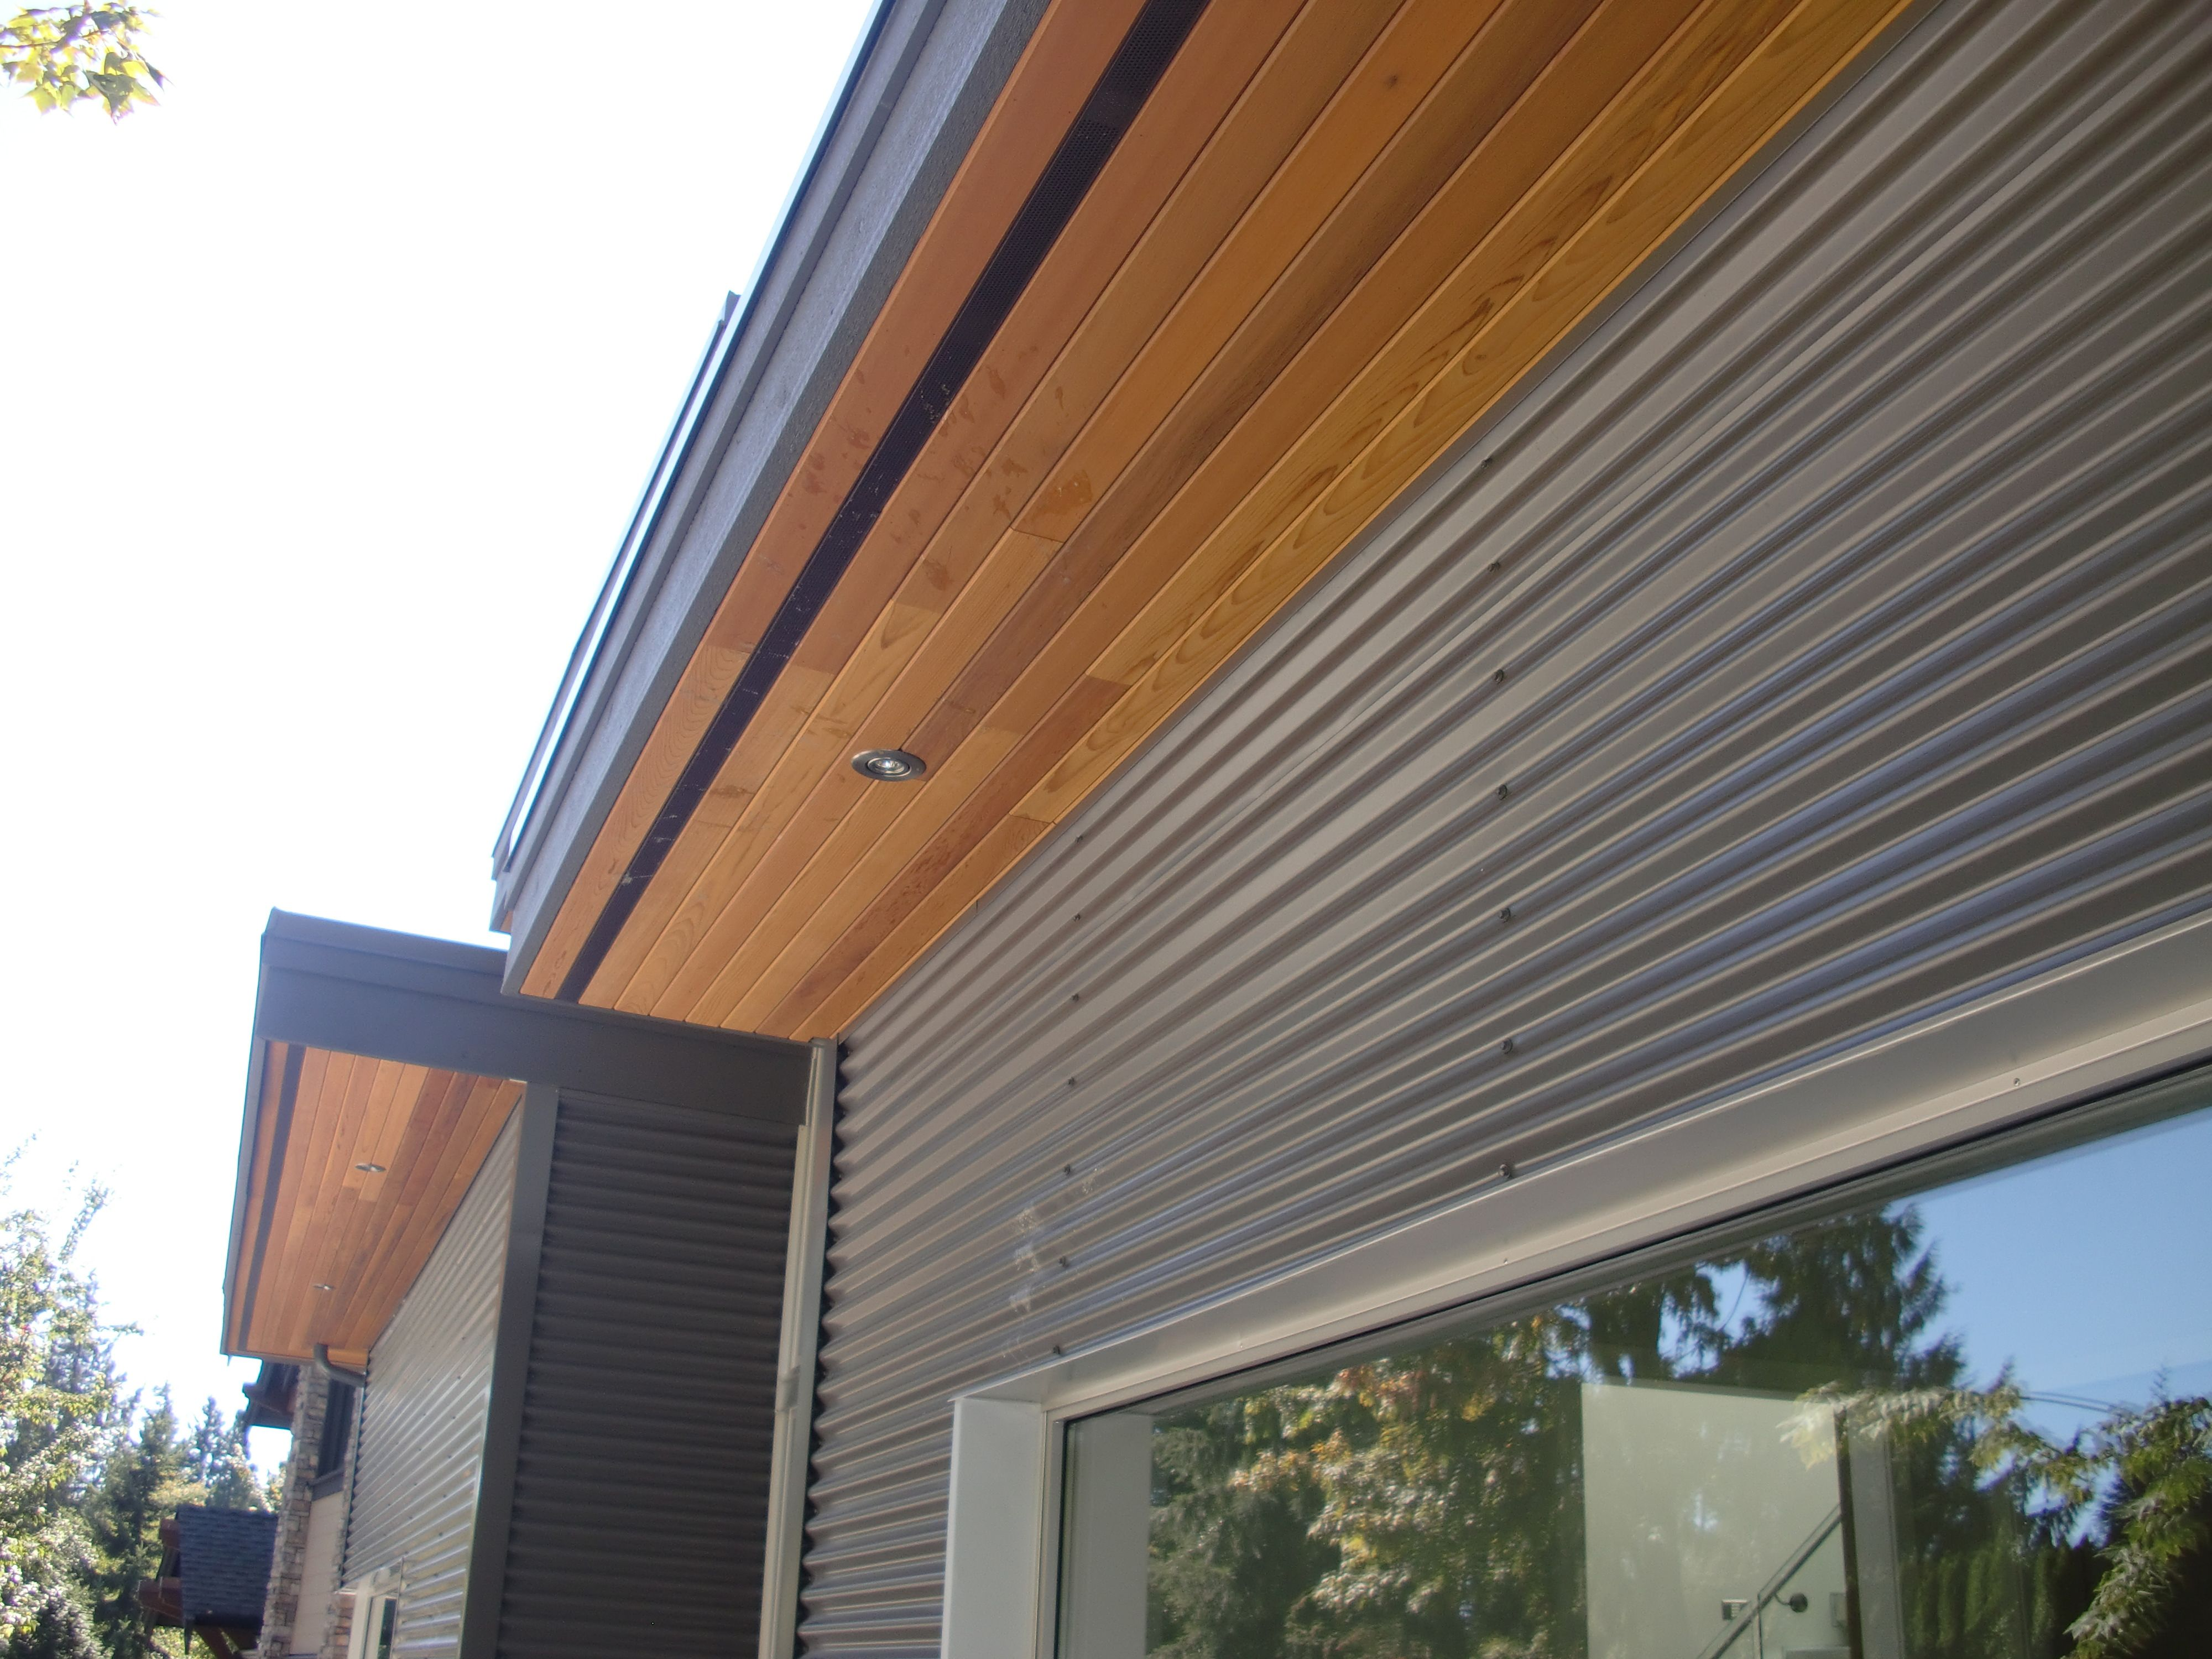 Wood Siding Ventilation : Cedar soffits vancouver google search ideas for the